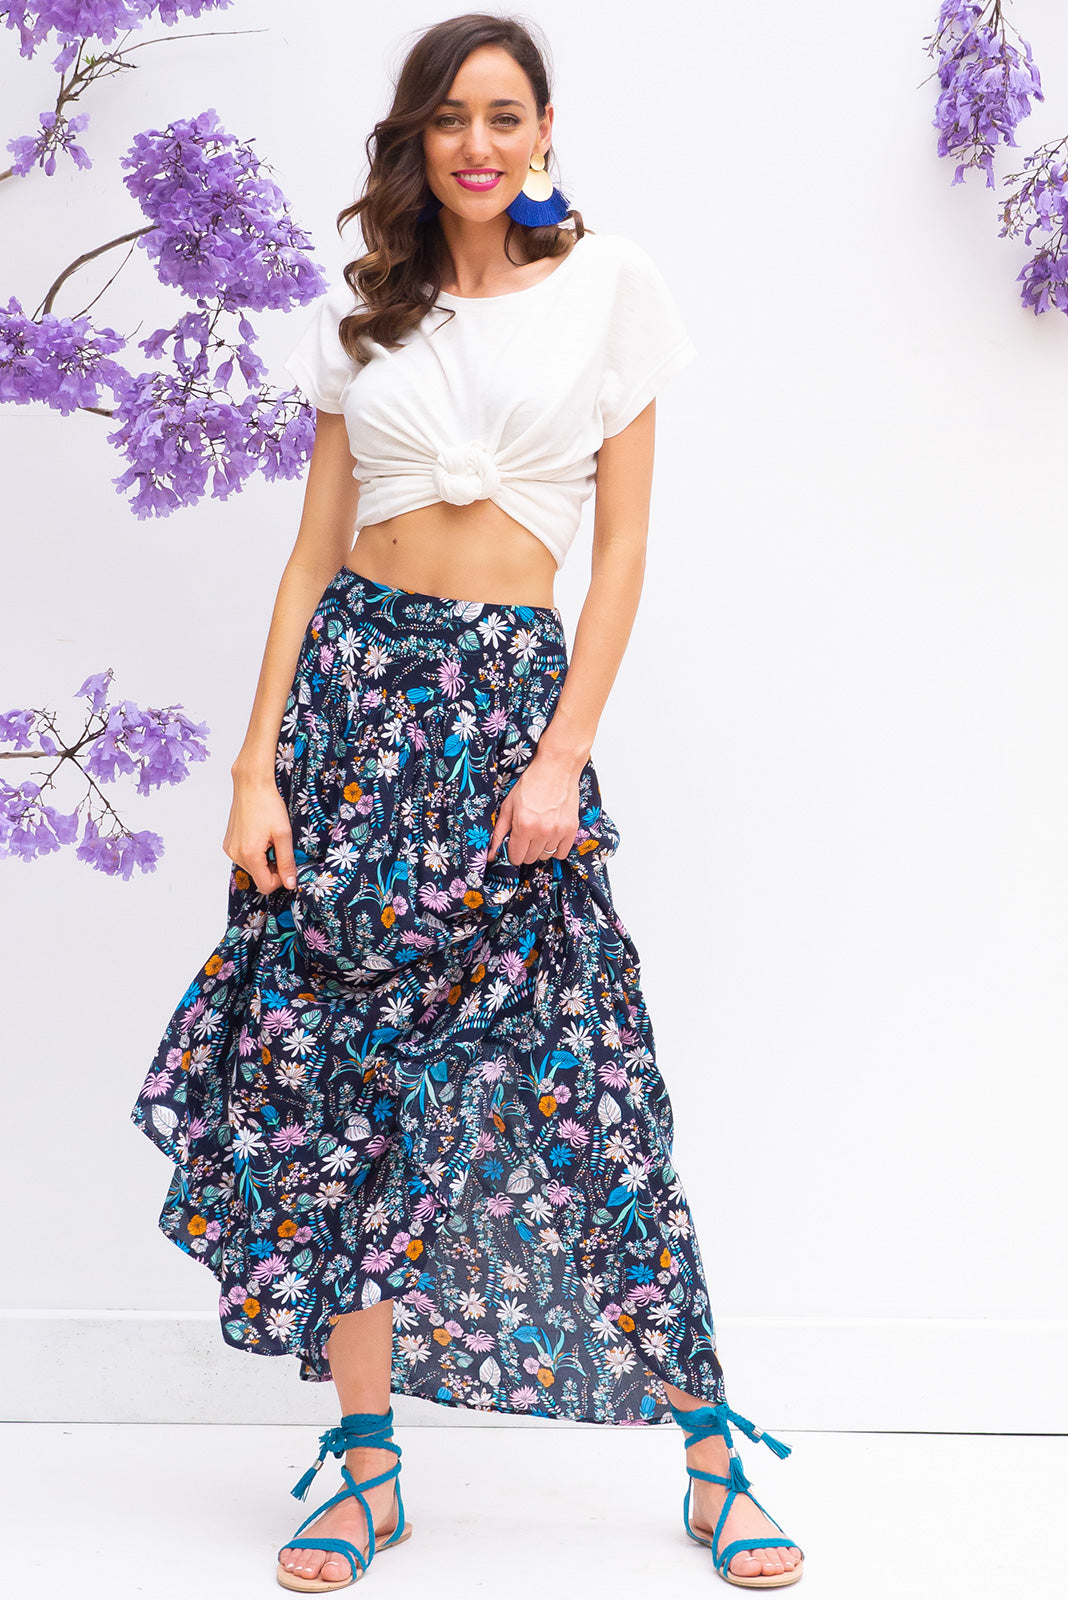 Sails Palma Navy Maxi Skirt with a soft ruched elastic back and pockets in a gorgeous bright navy intricate floral print on rayon fabric